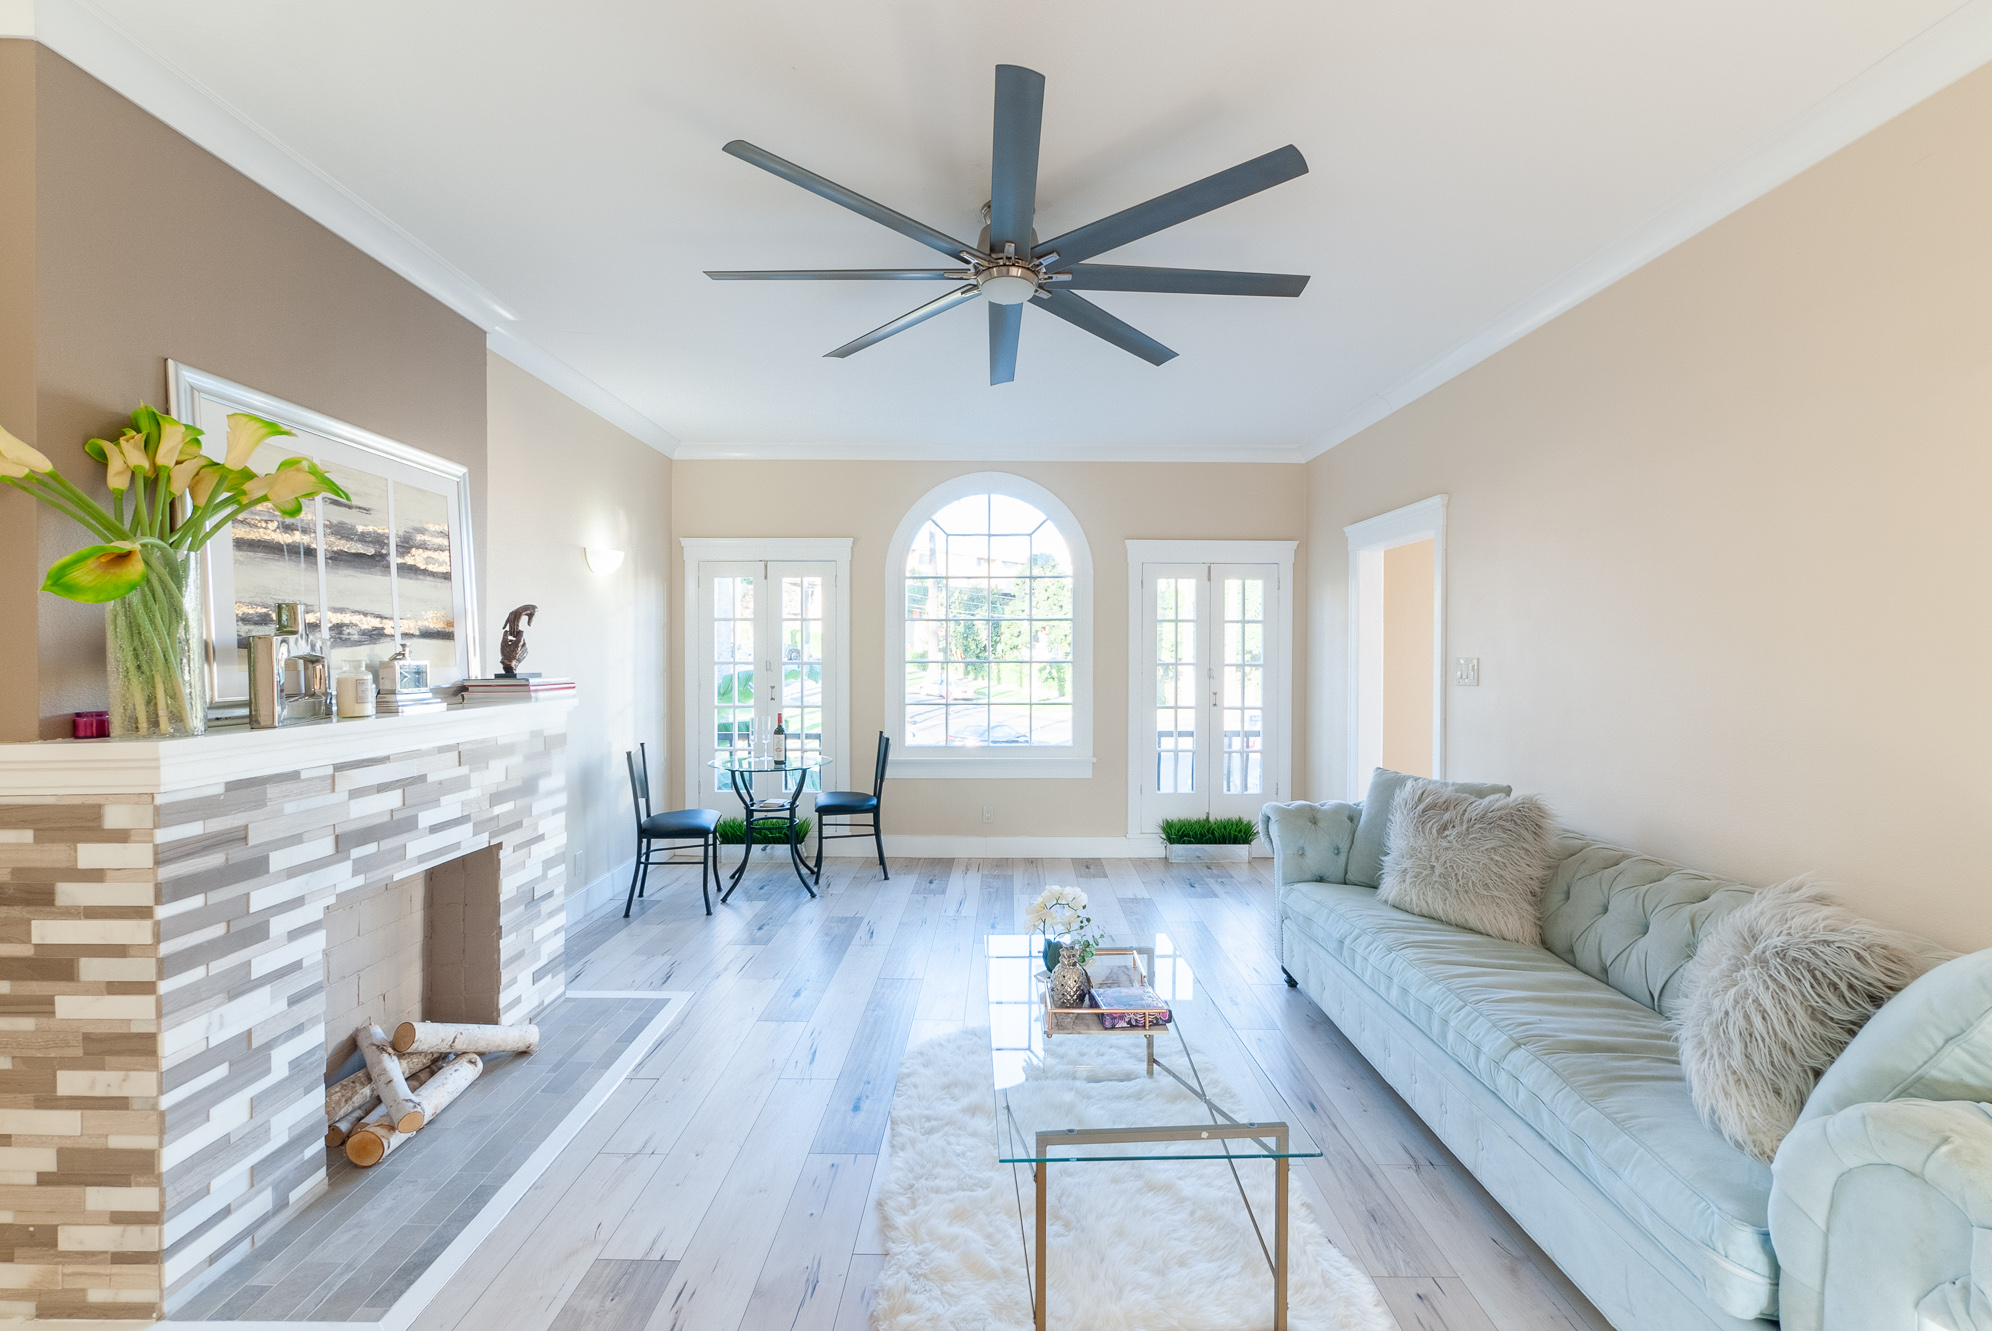 Awe-inspiring 1920s 2 Bedroom Townhouse w/ Balcony in a Wonderful WeHo Renovation!